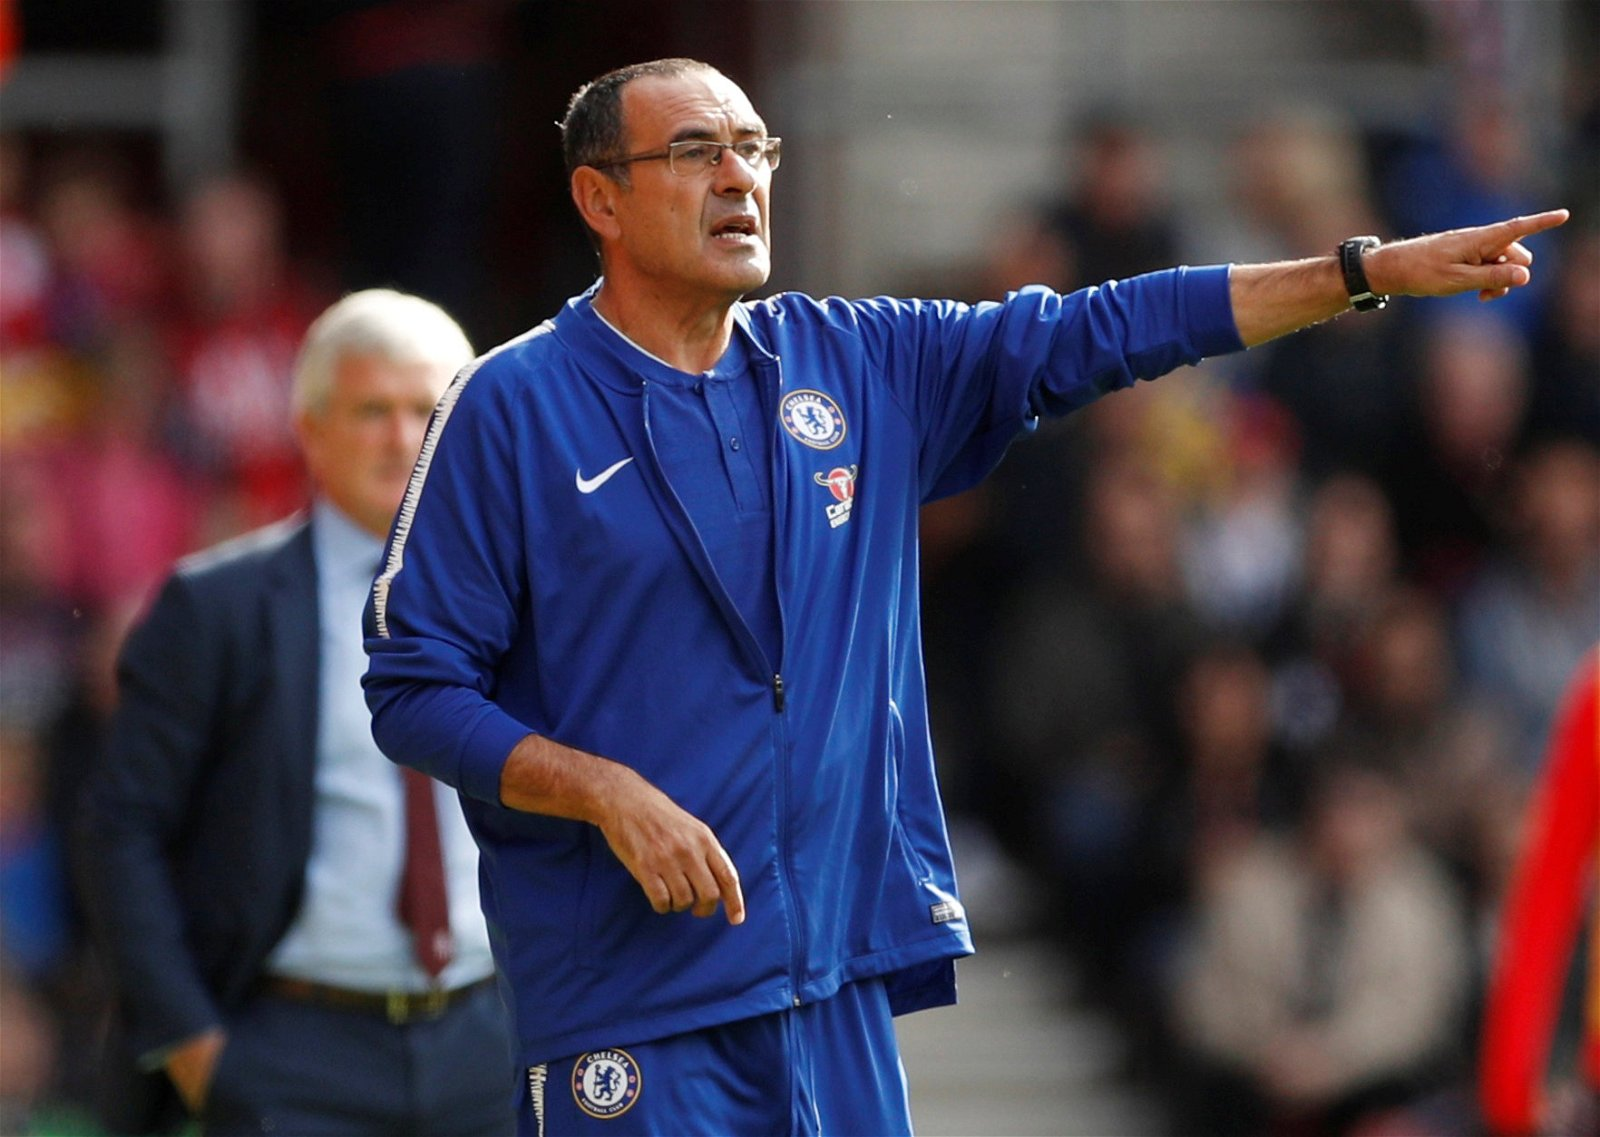 Maurizio Sarri on the touchline - Sarri's Chelsea & Emery's Arsenal still very far away from being the real deal